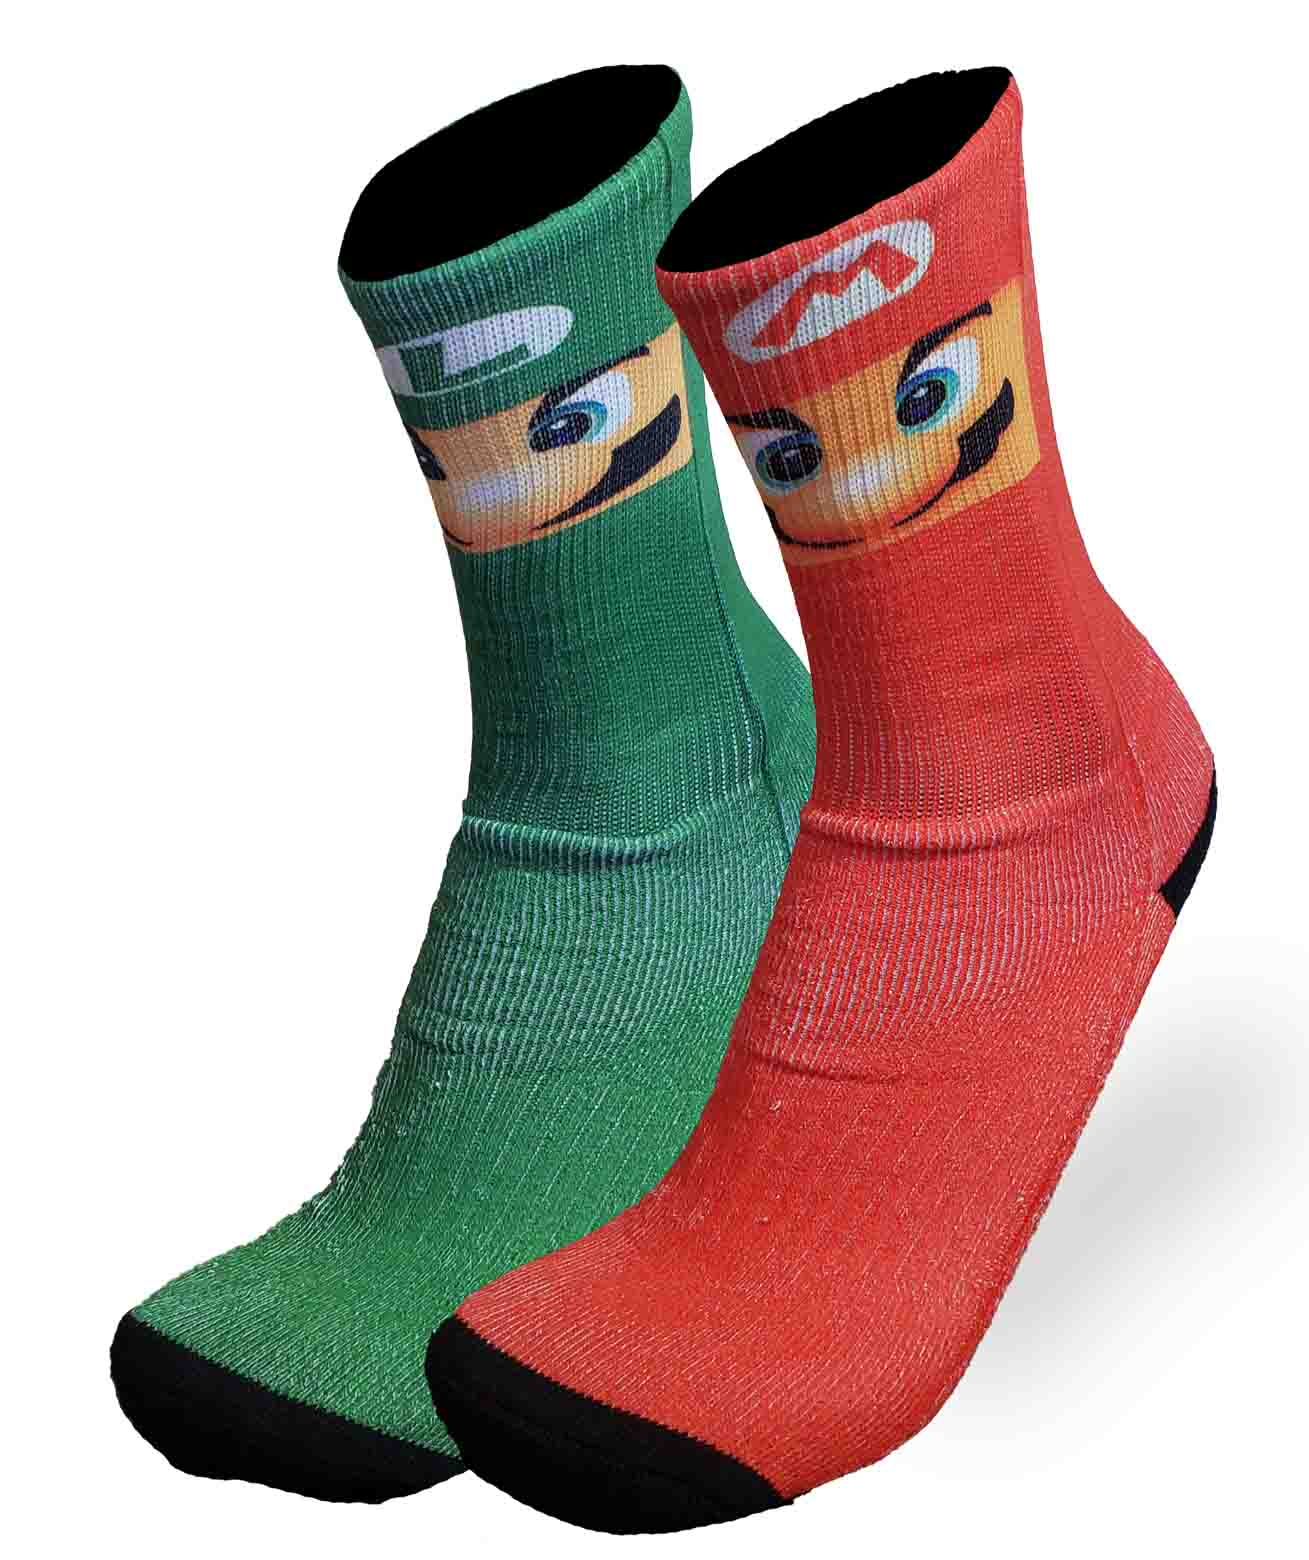 MEIA DIVERTIDA MARIO BROS FOOTLOOK 39/43